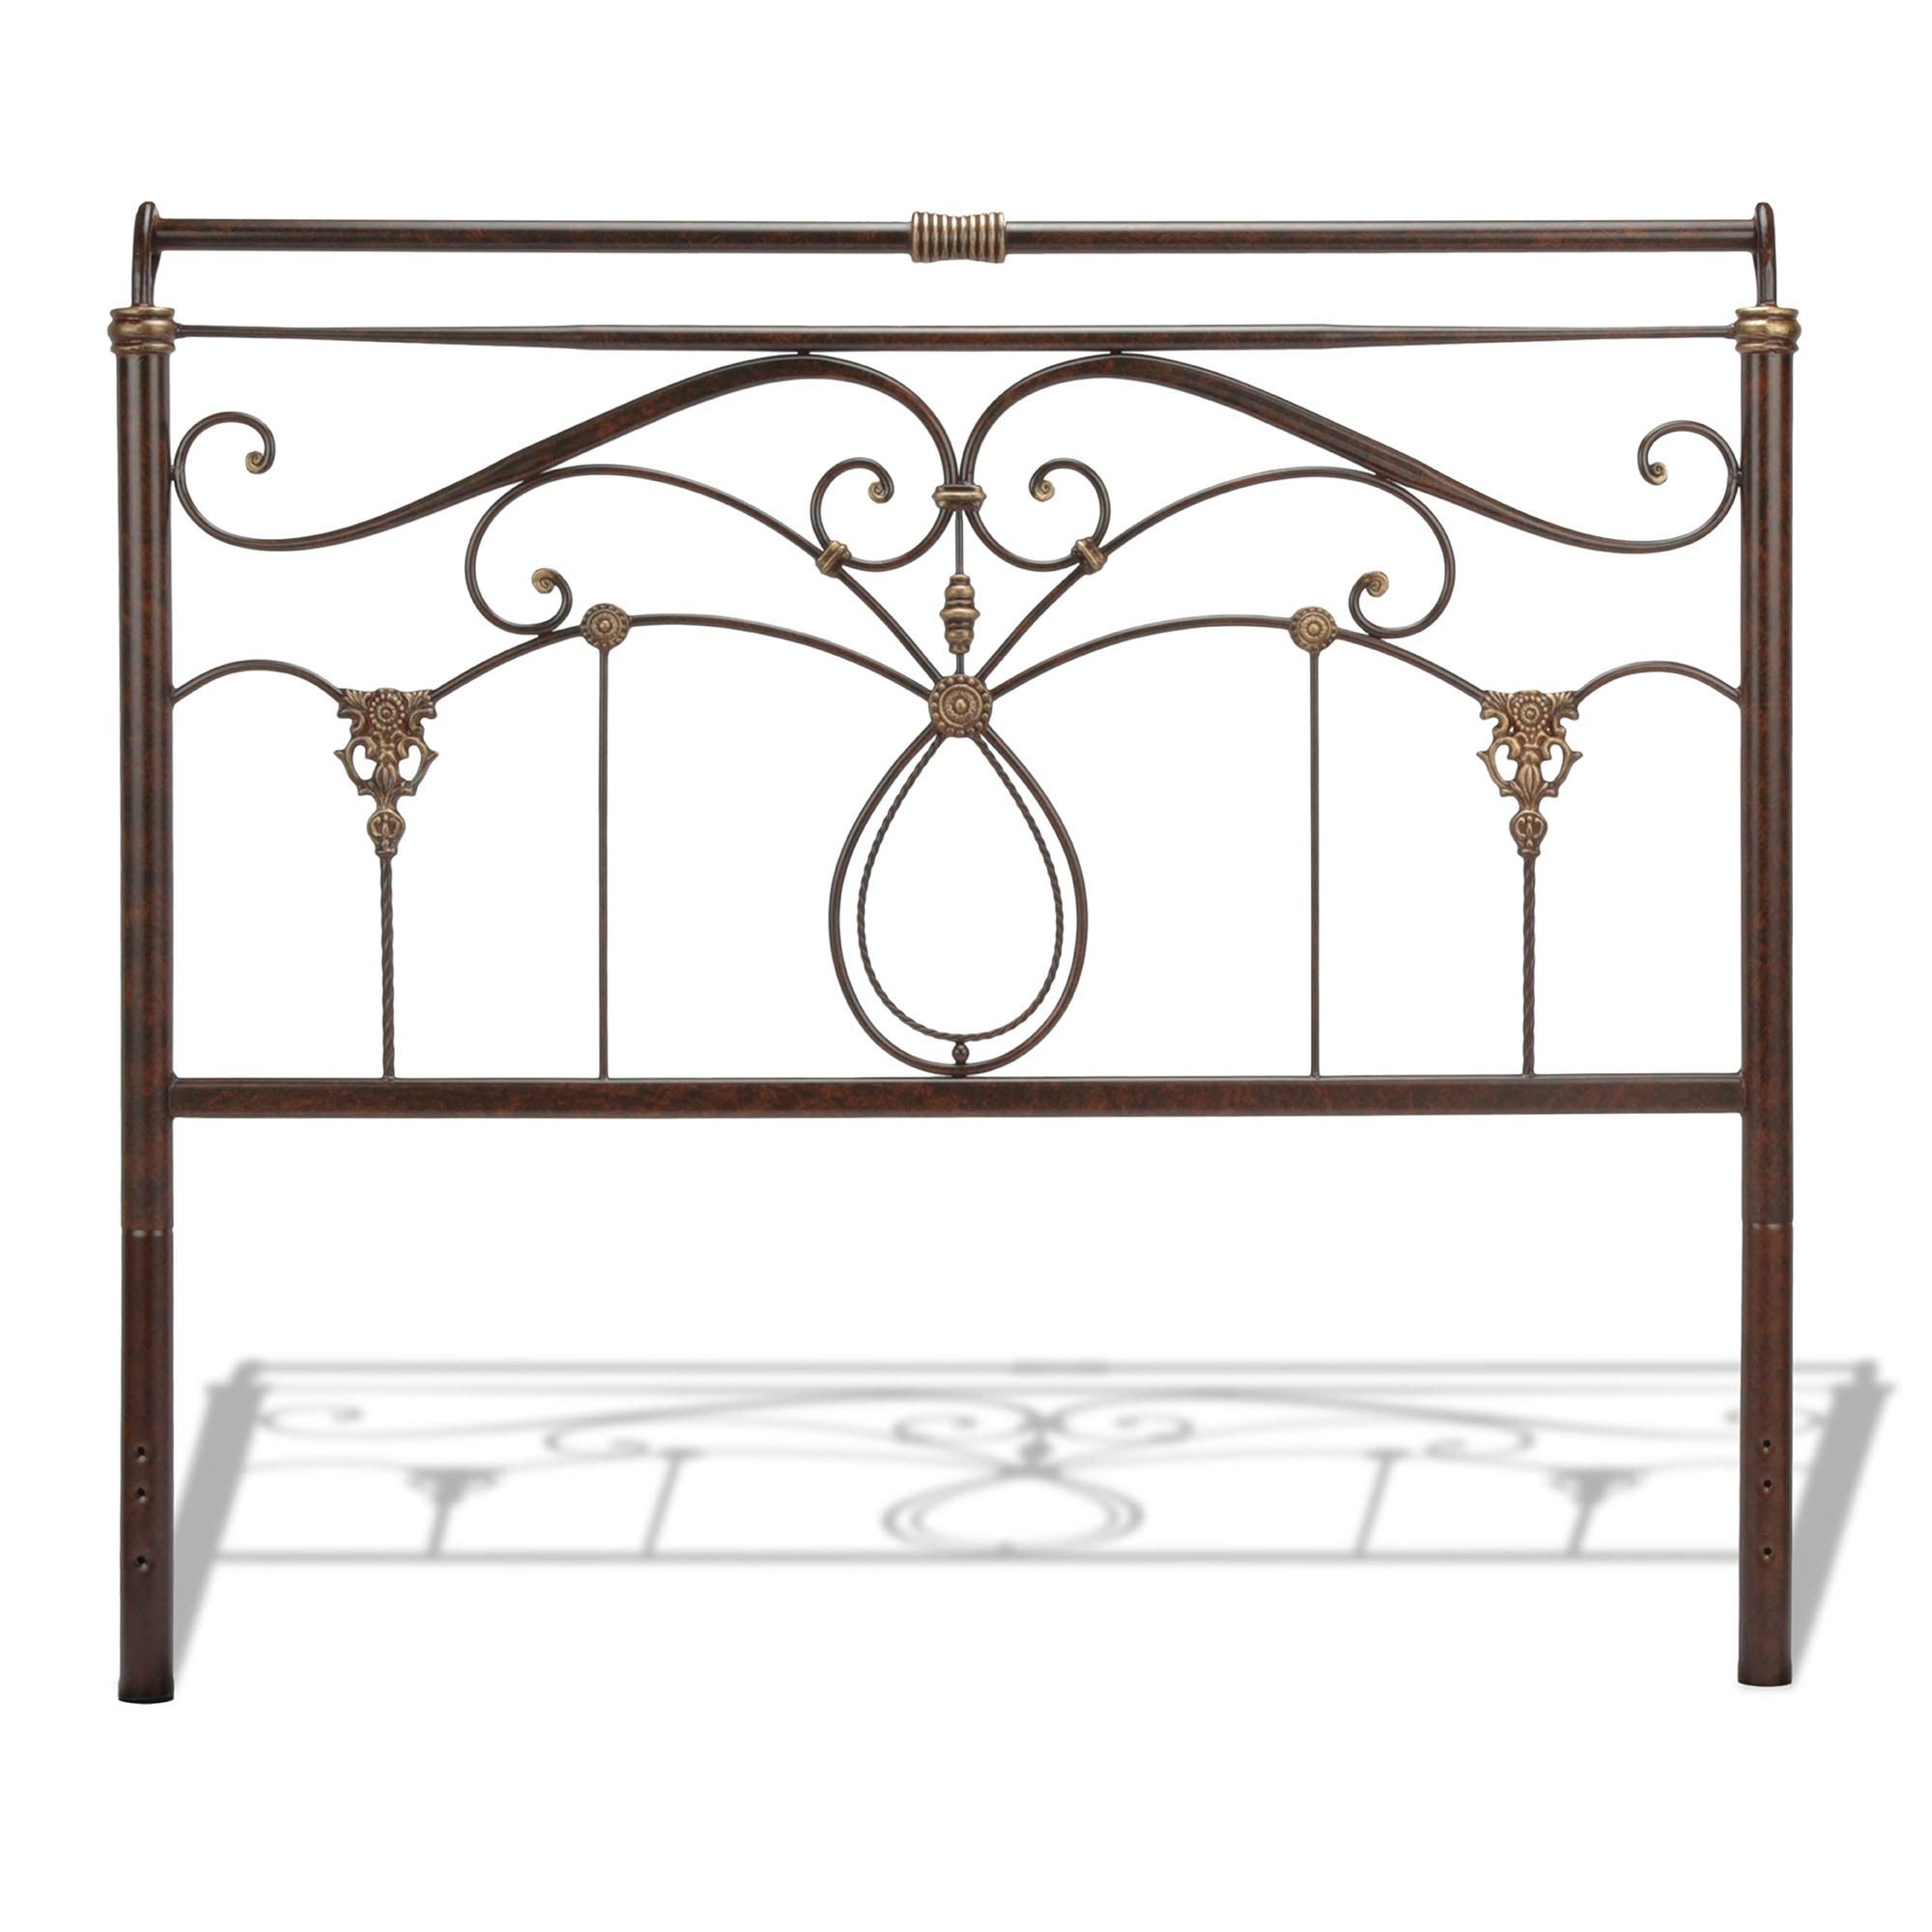 Leggett & Platt Lucinda Metal Headboard Panel with Intricate Scrollwork and Sleigh-Styled Top Rail, Marbled Russet Finish, Queen